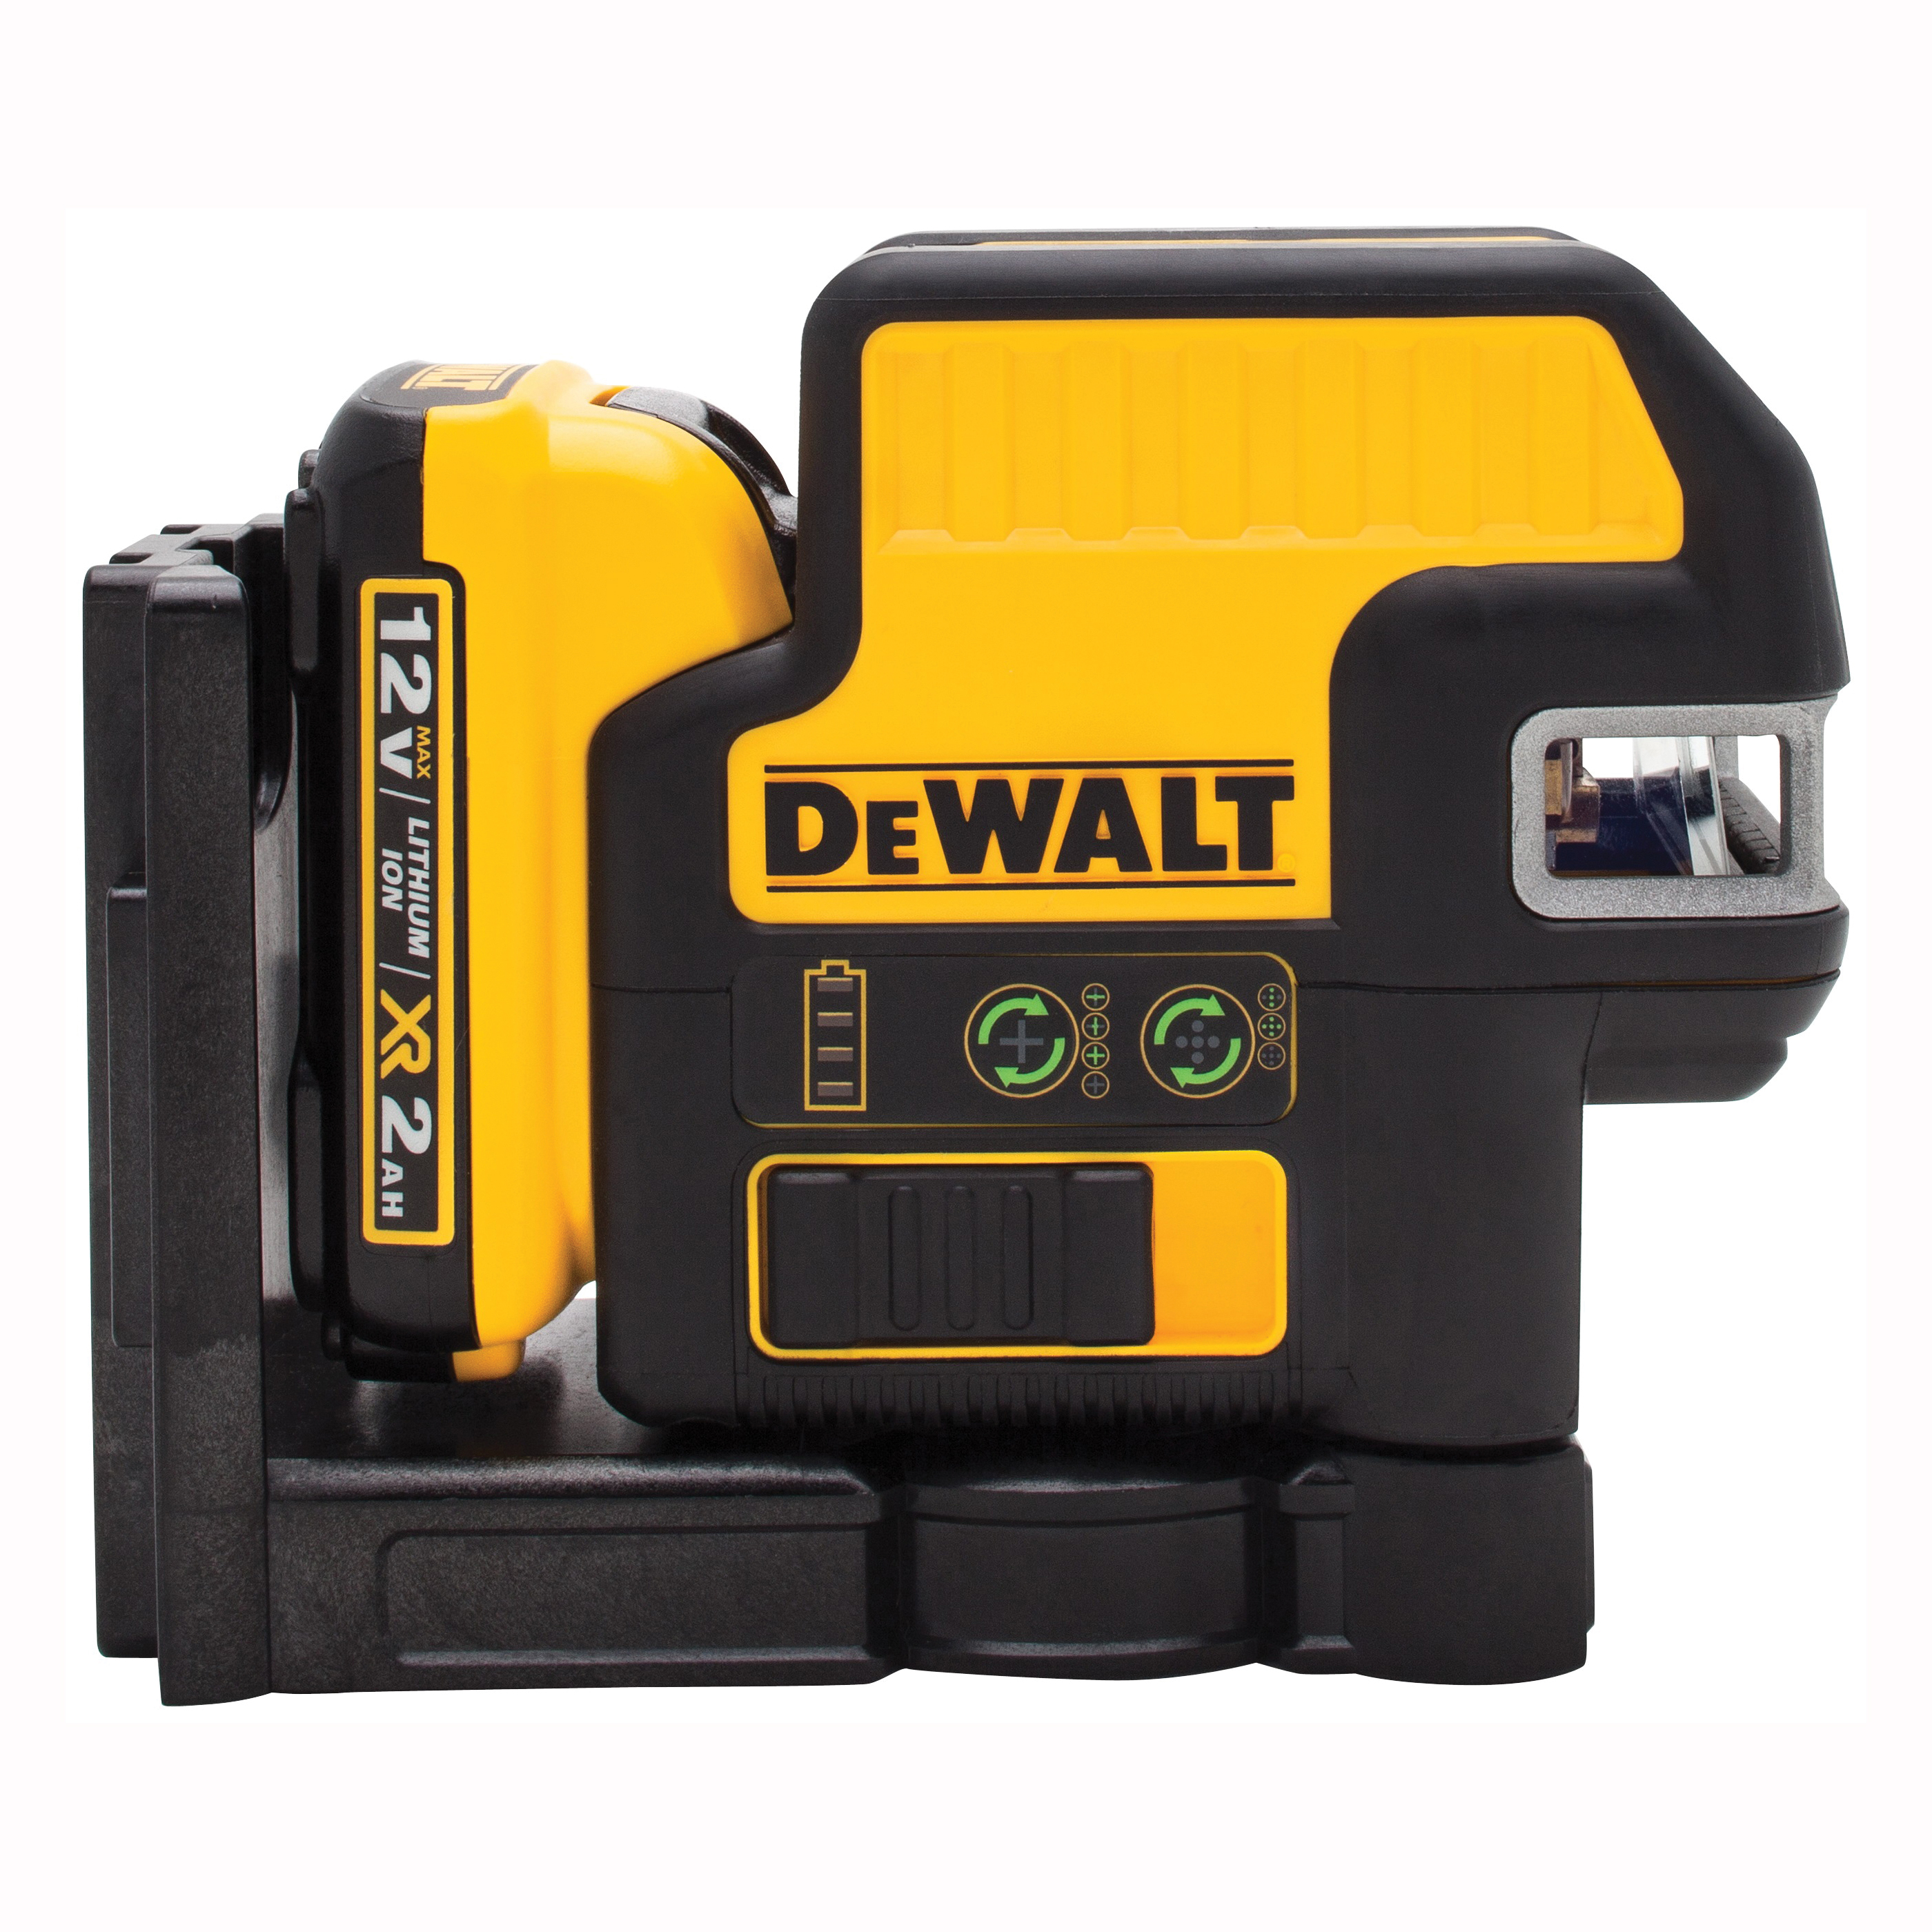 Picture of DeWALT DW0825LG Laser Level, 165 ft, +/-1/8 in at 30 ft Accuracy, Green Laser